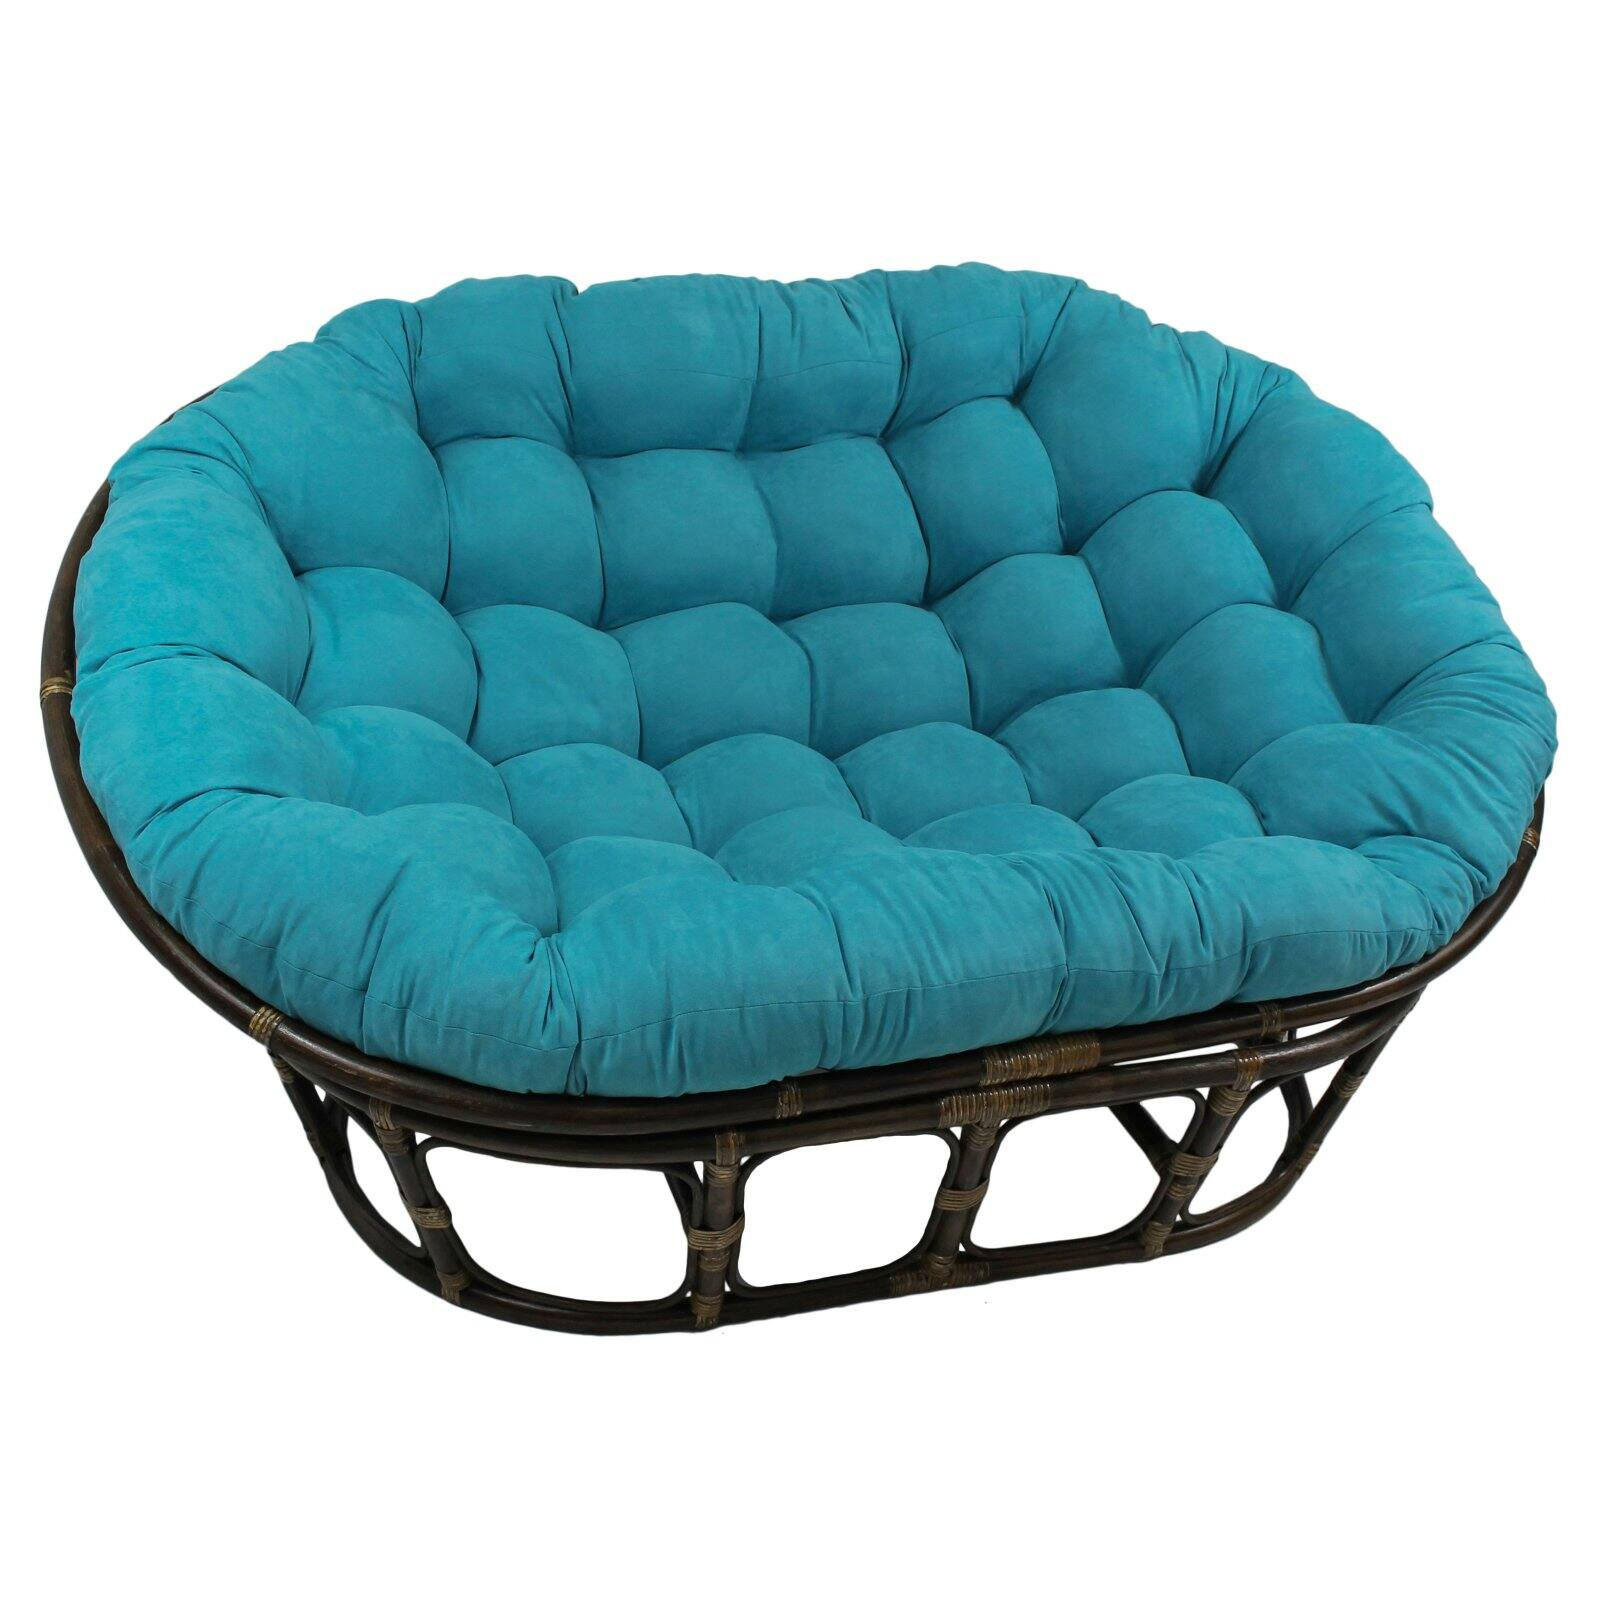 International Caravan Double Papasan Chair With Micro Suede Cushion – Walmart Intended For Decker Papasan Chairs (View 13 of 15)